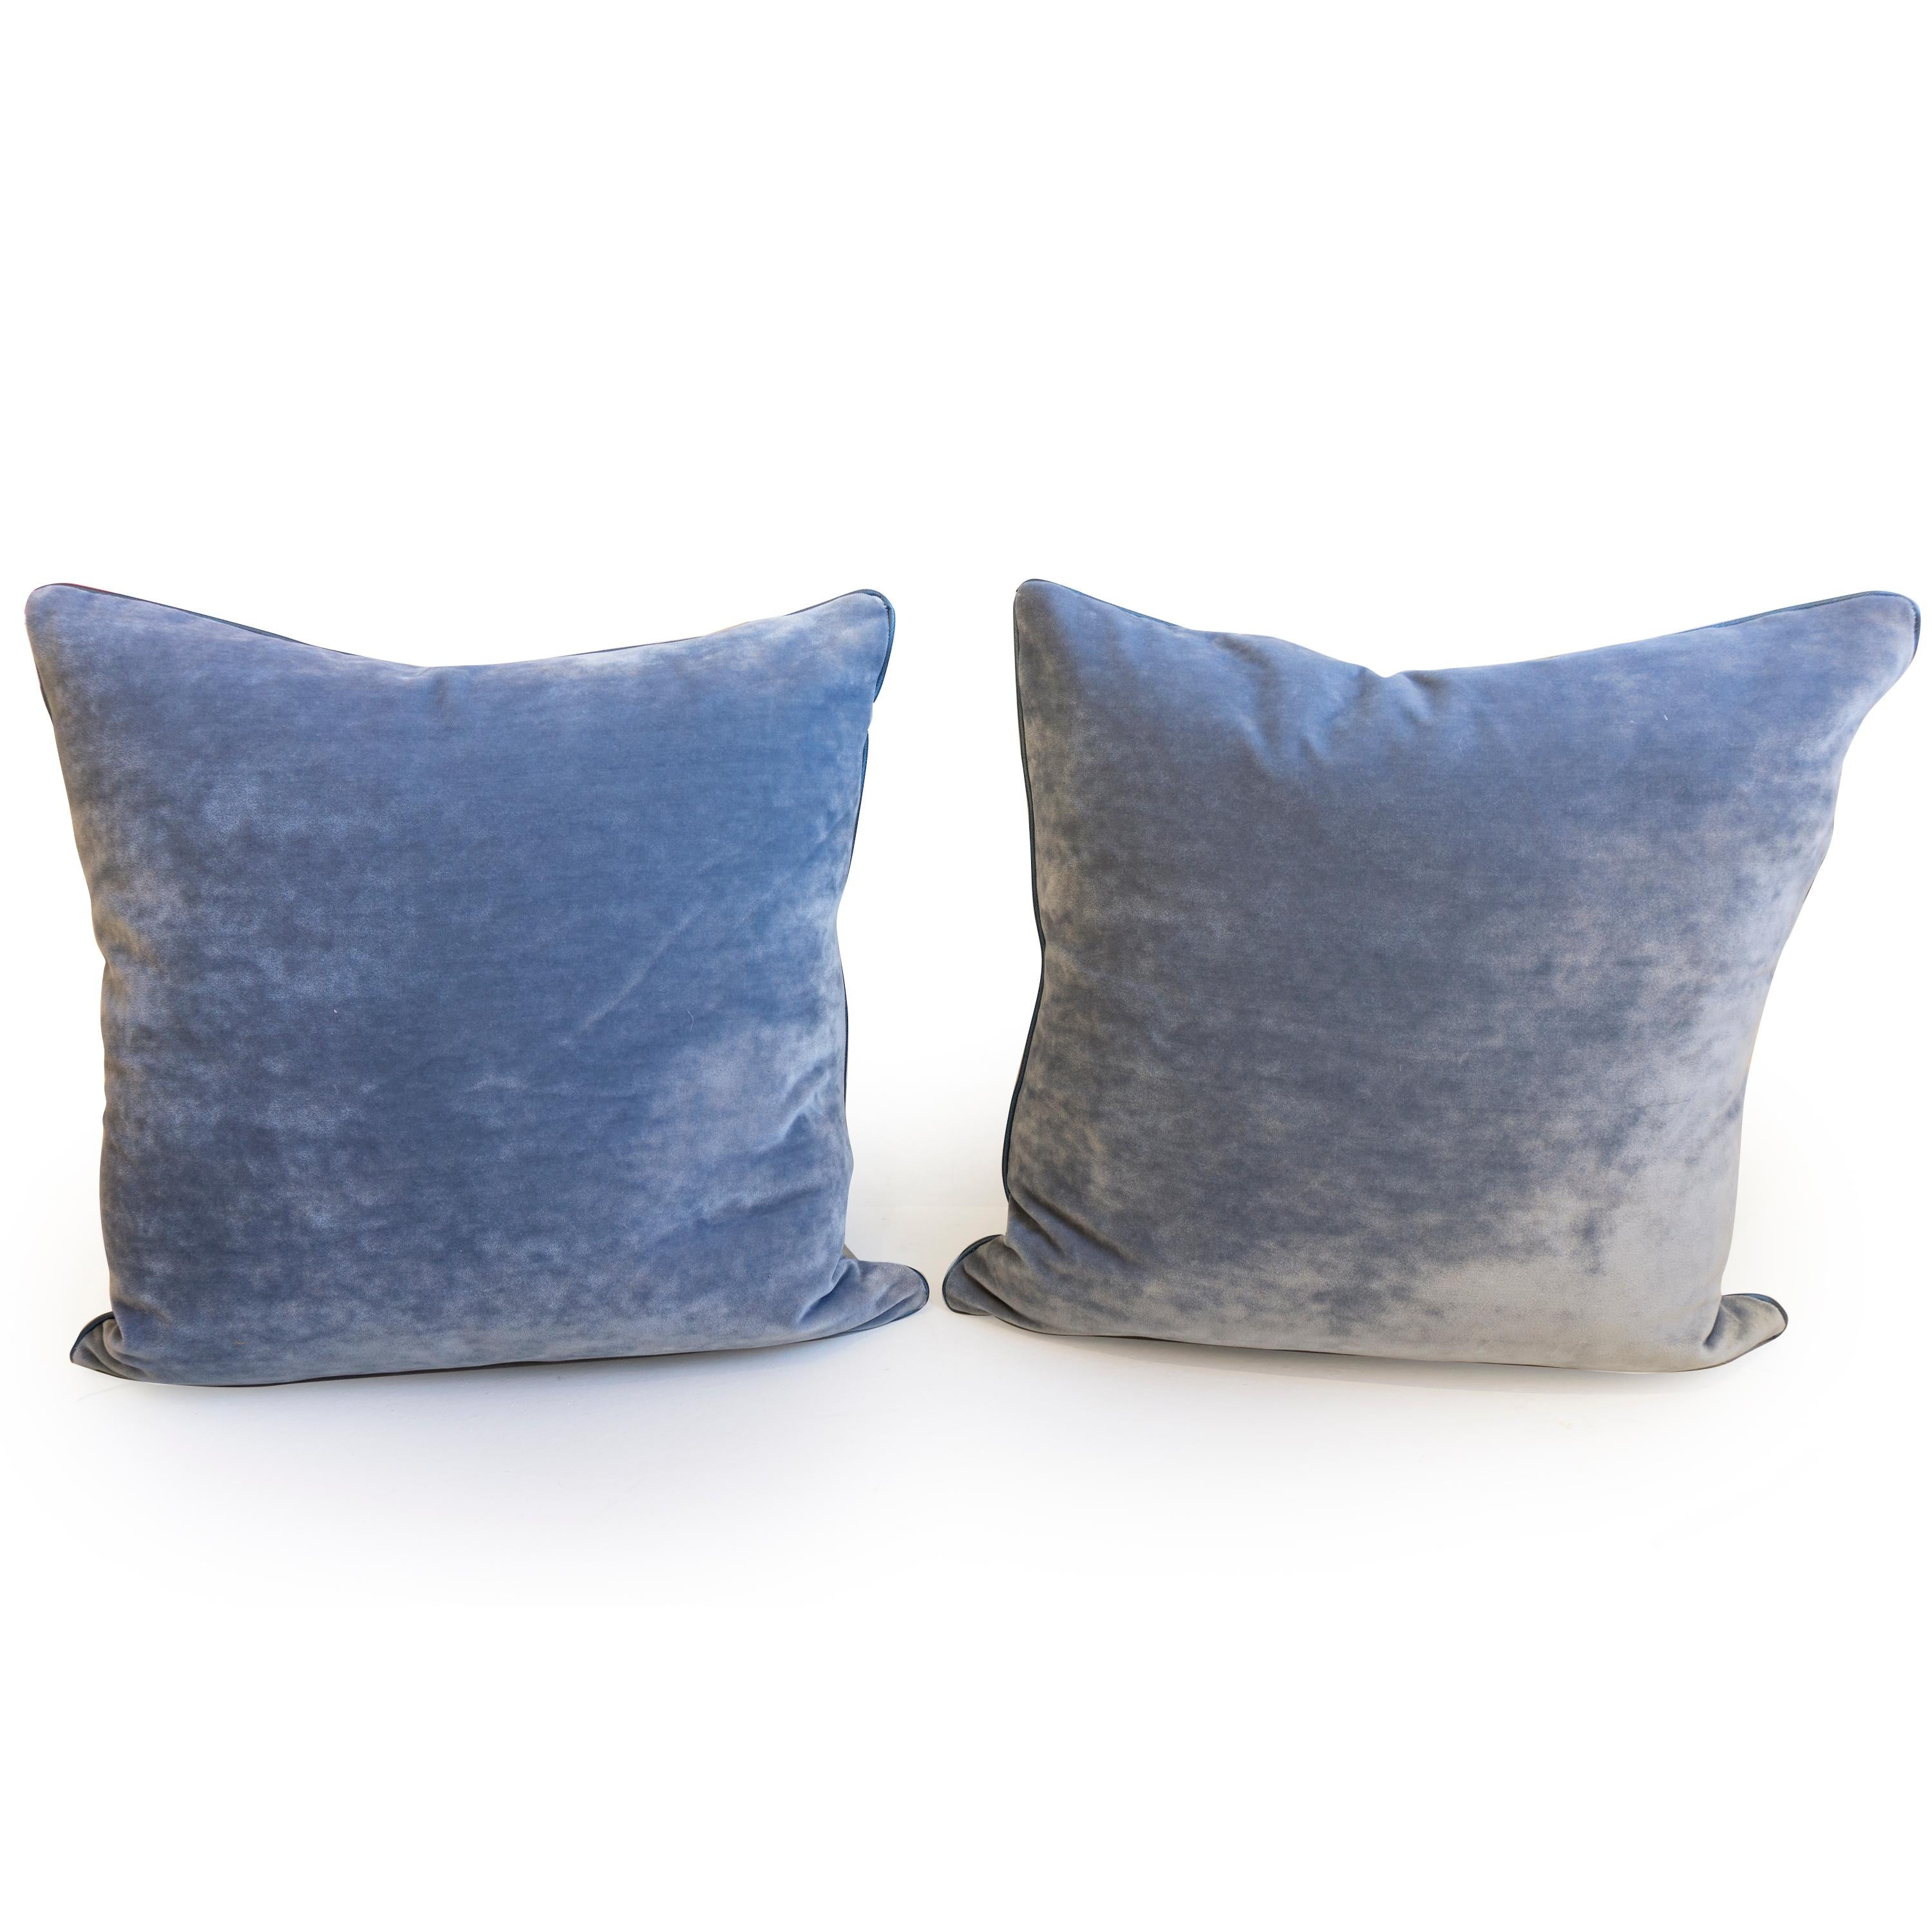 Groovy Throw Pillows With Striped Linen And Blue Velvet For Sale At Theyellowbook Wood Chair Design Ideas Theyellowbookinfo